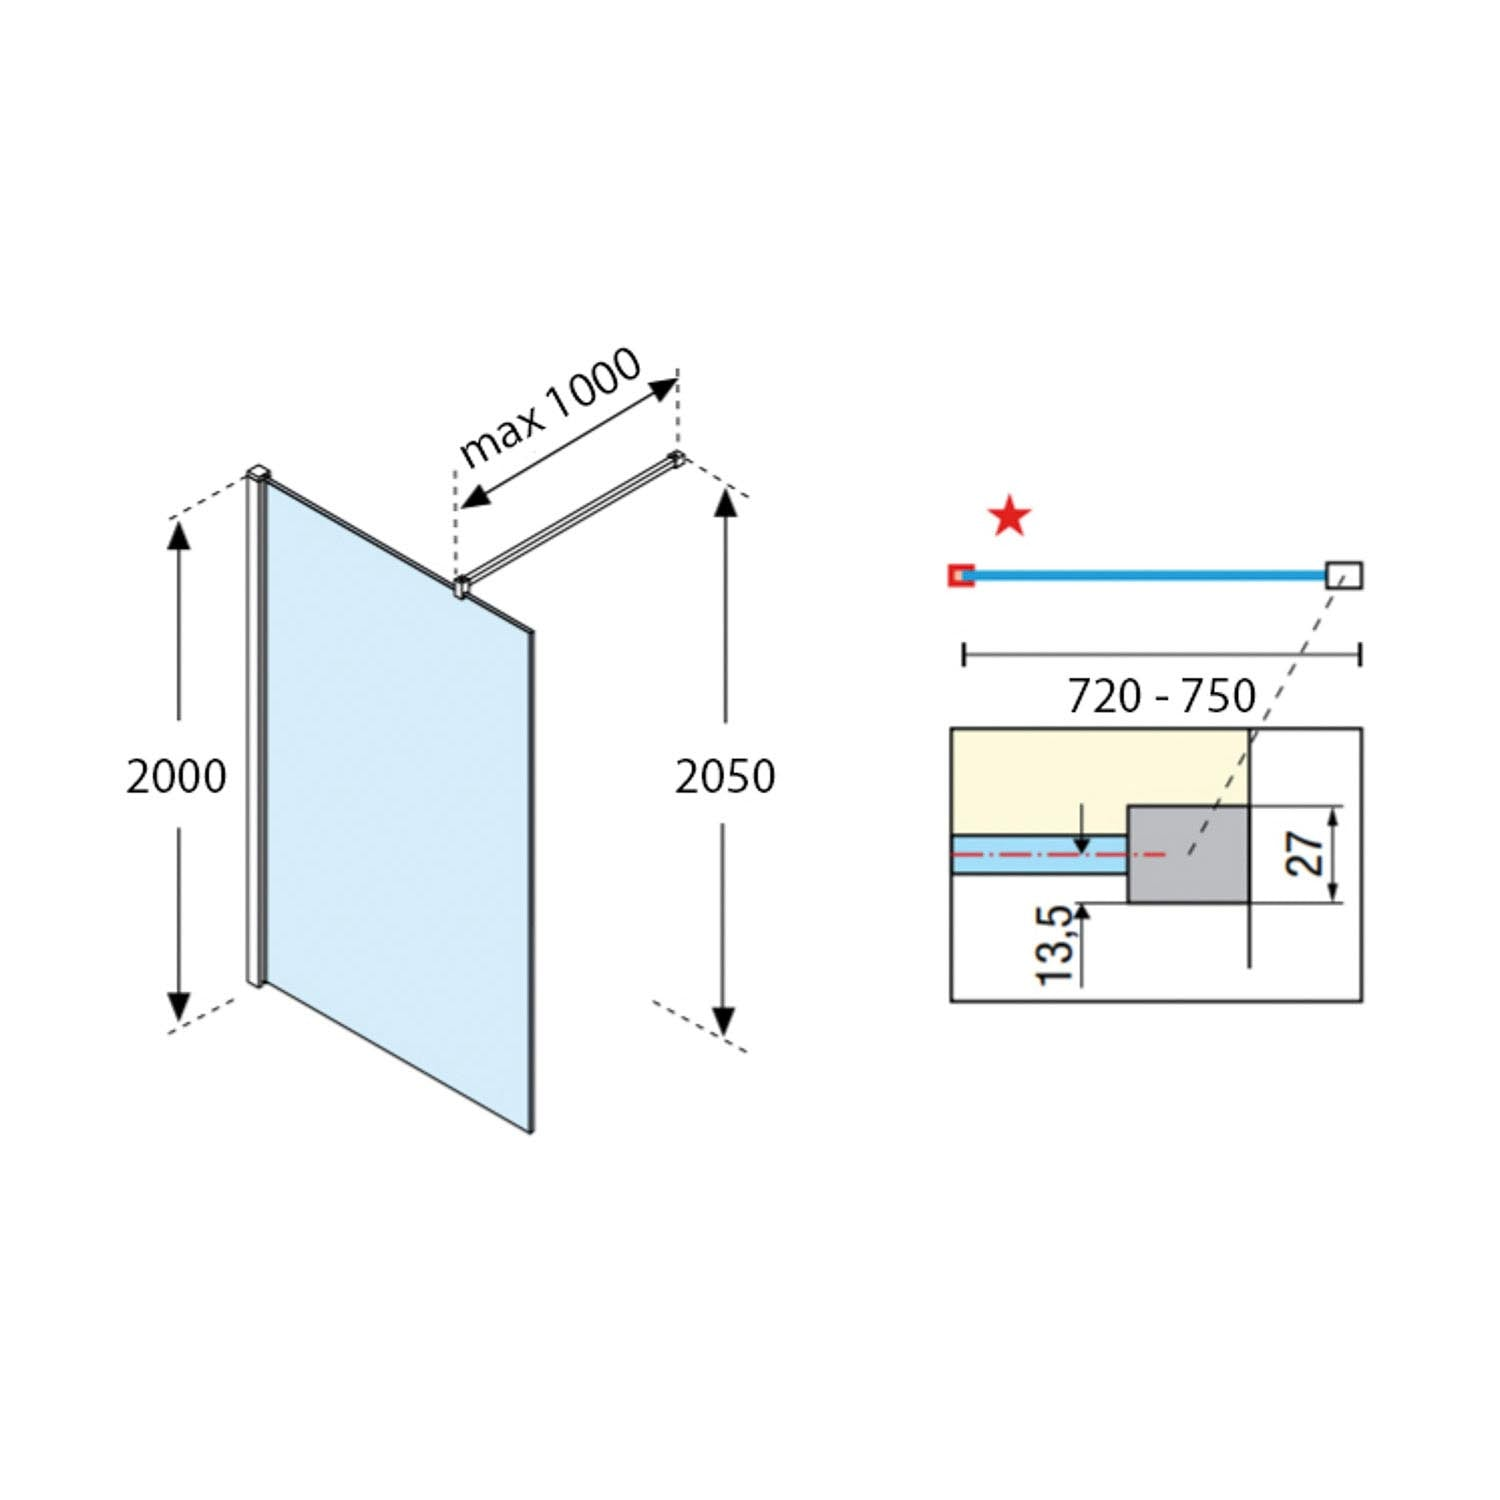 720-750mm Ergo Wet Room Screen Satin Band Glass with a matt black finish dimensional drawing